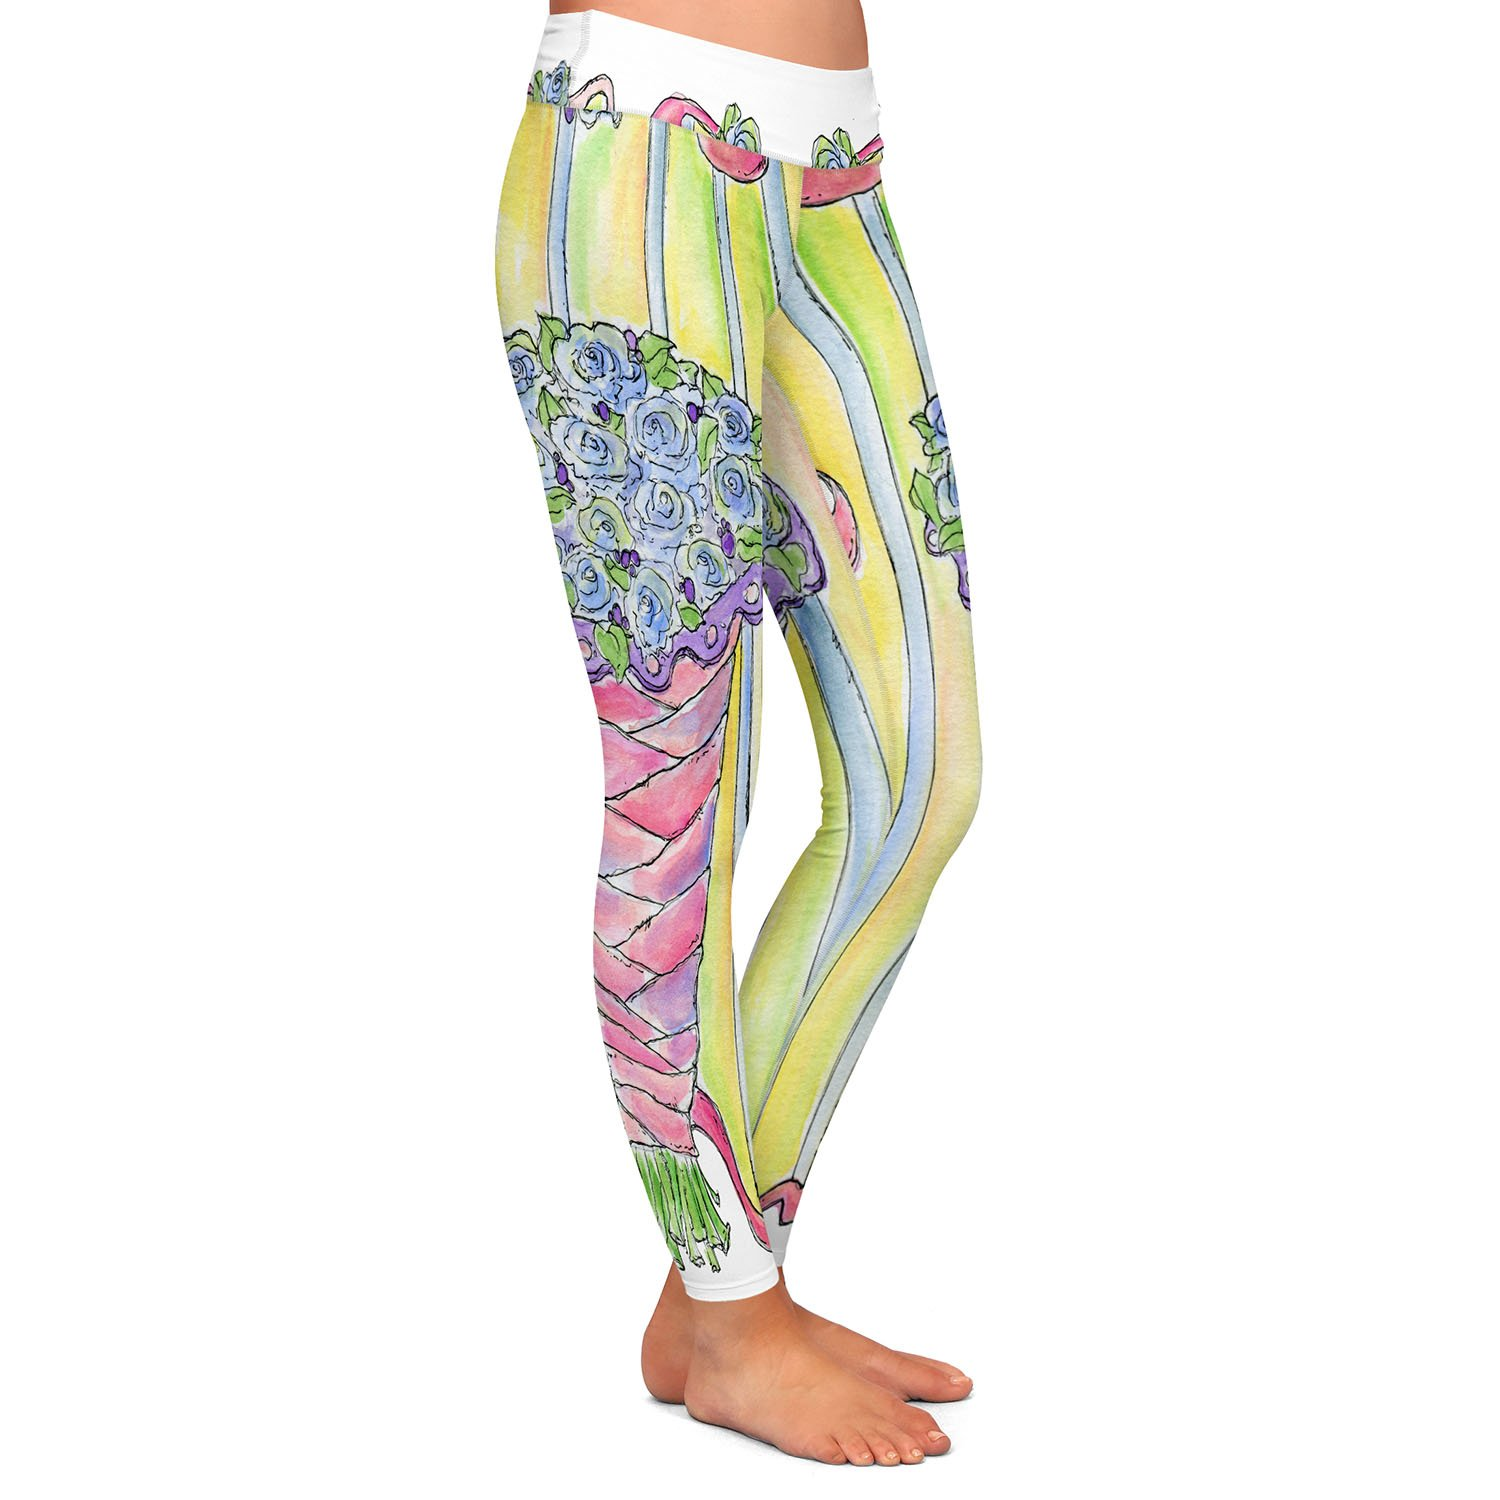 DiaNoche Designs Athletic Yoga Leggings from by Marley Ungaro - Wedding Bouquet